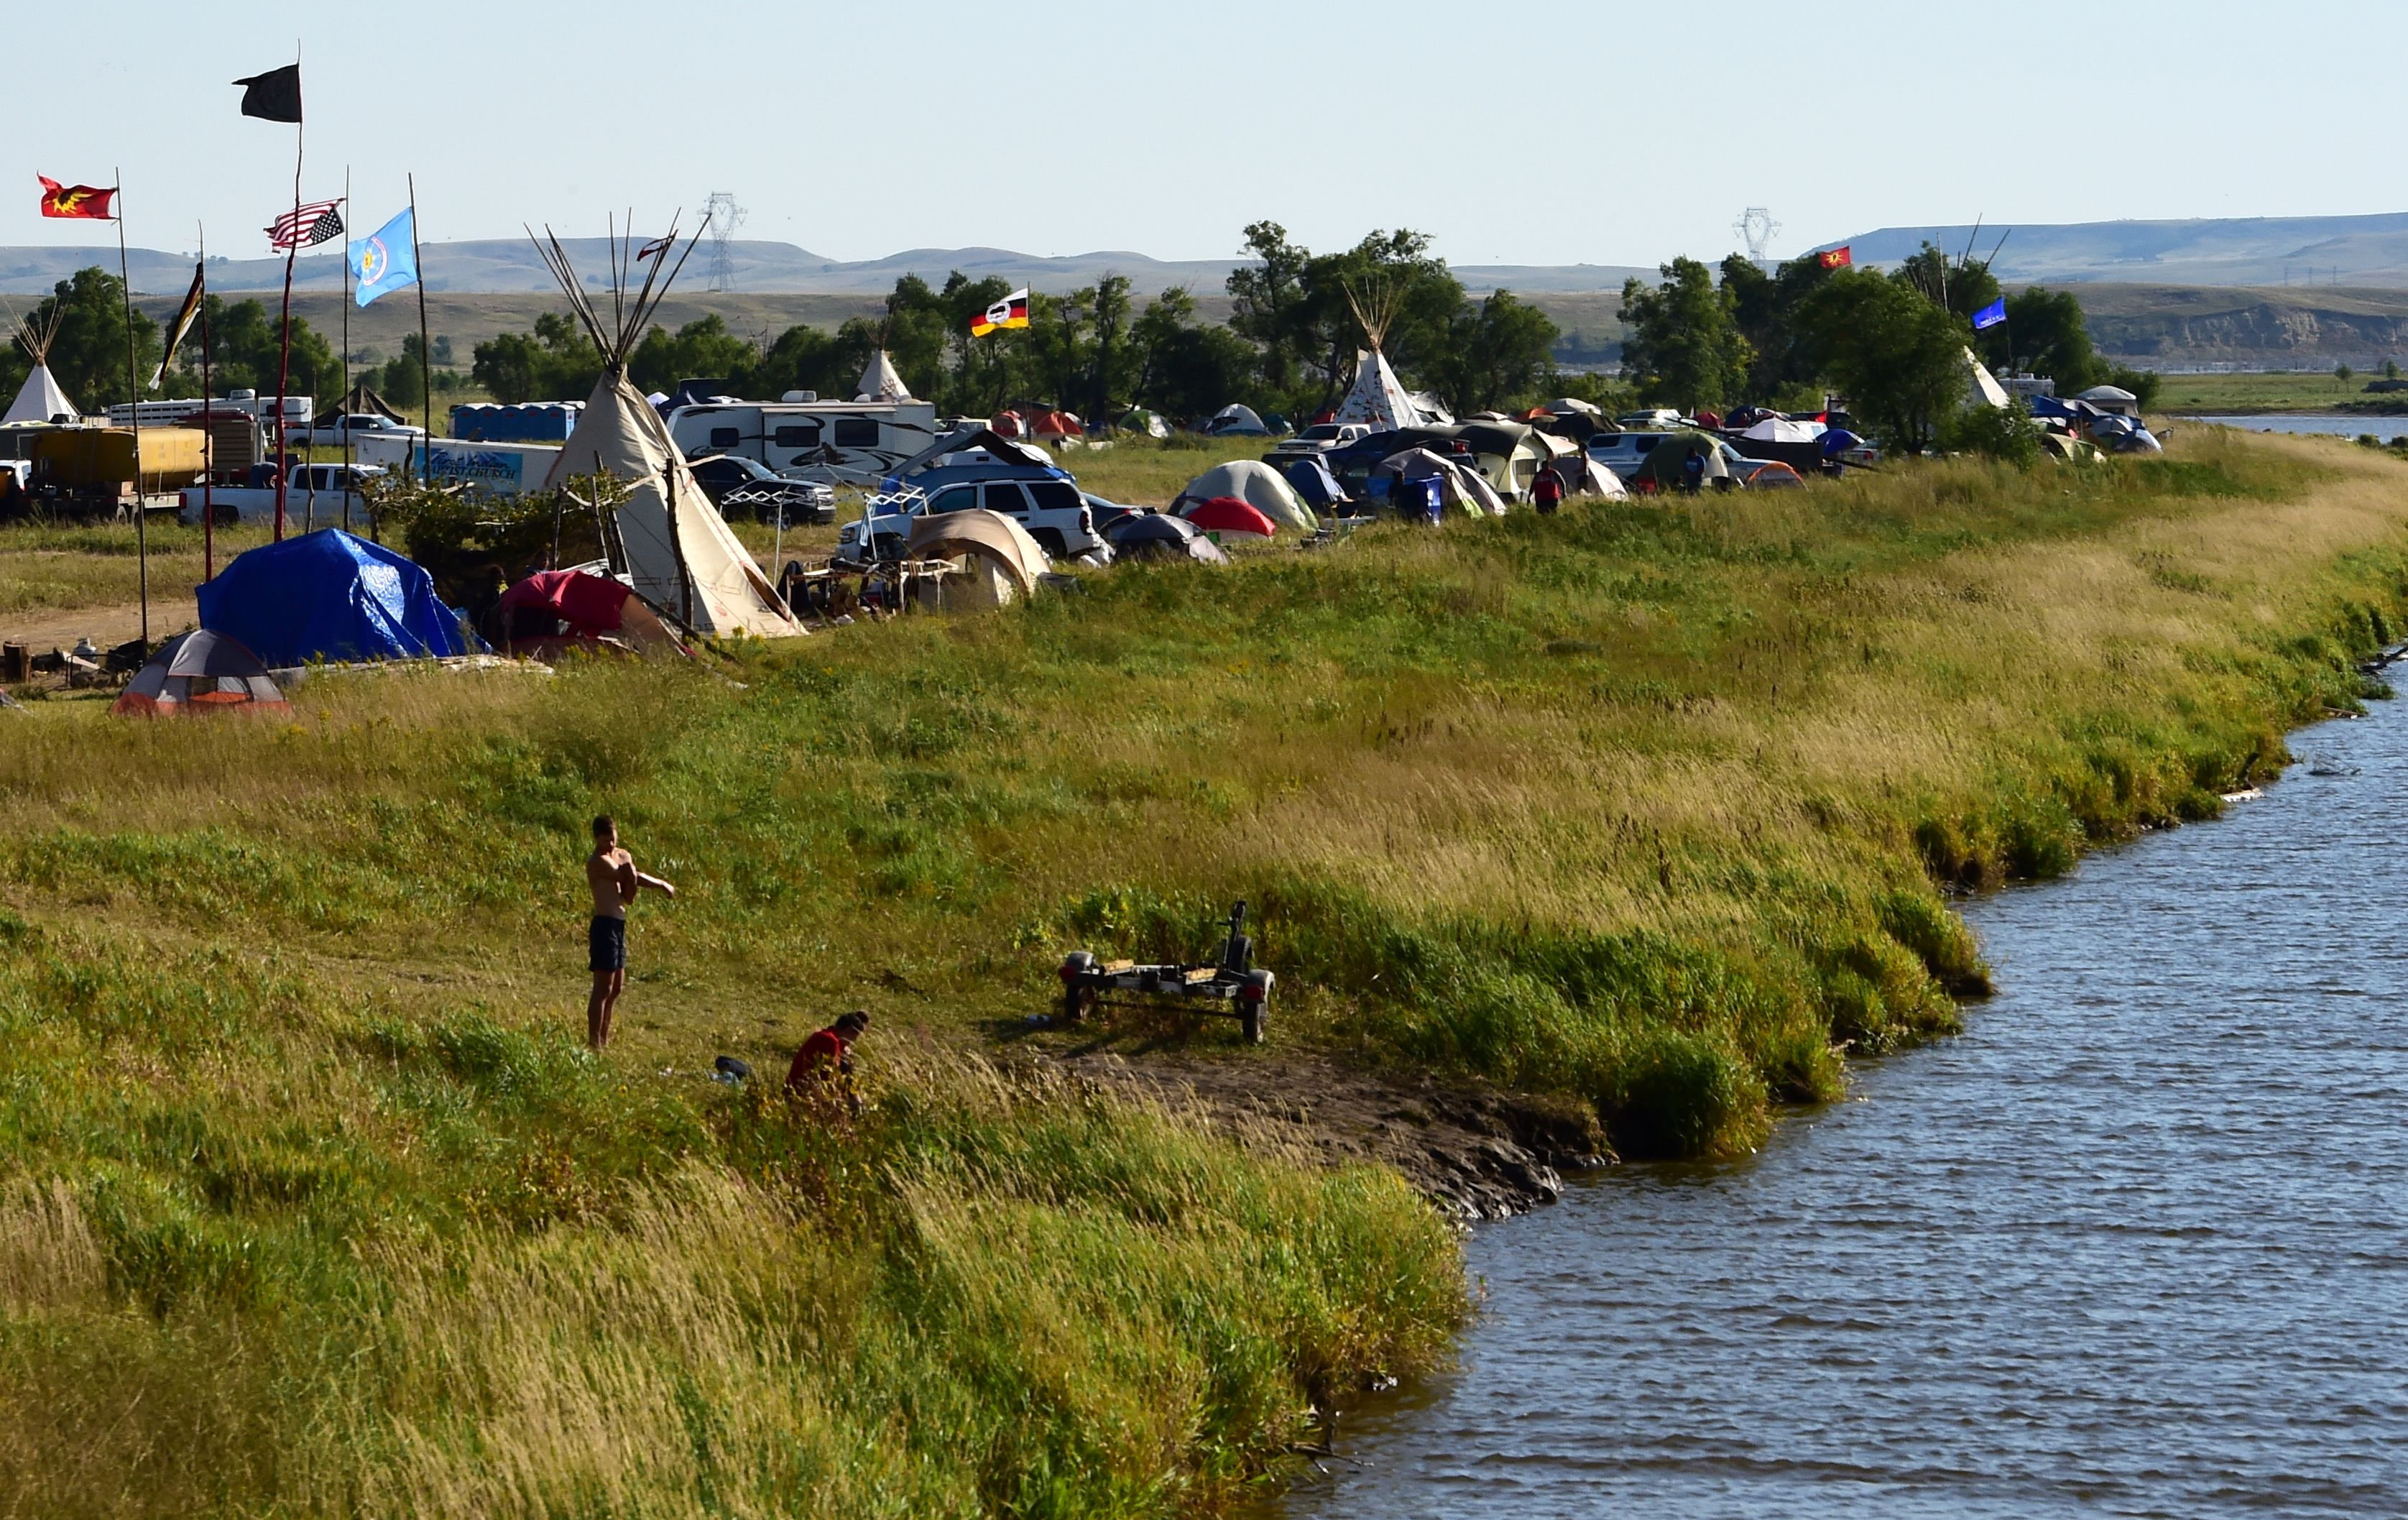 A view of a protest encampment near Cannon Ball, North Dakota where members of some 200 Native American tribes from across the U.S. and Canada have gathered to lend their support to the Standing Rock Sioux Tribe's opposition to the Dakota Access Pipeline on Sept. 3, 2016.